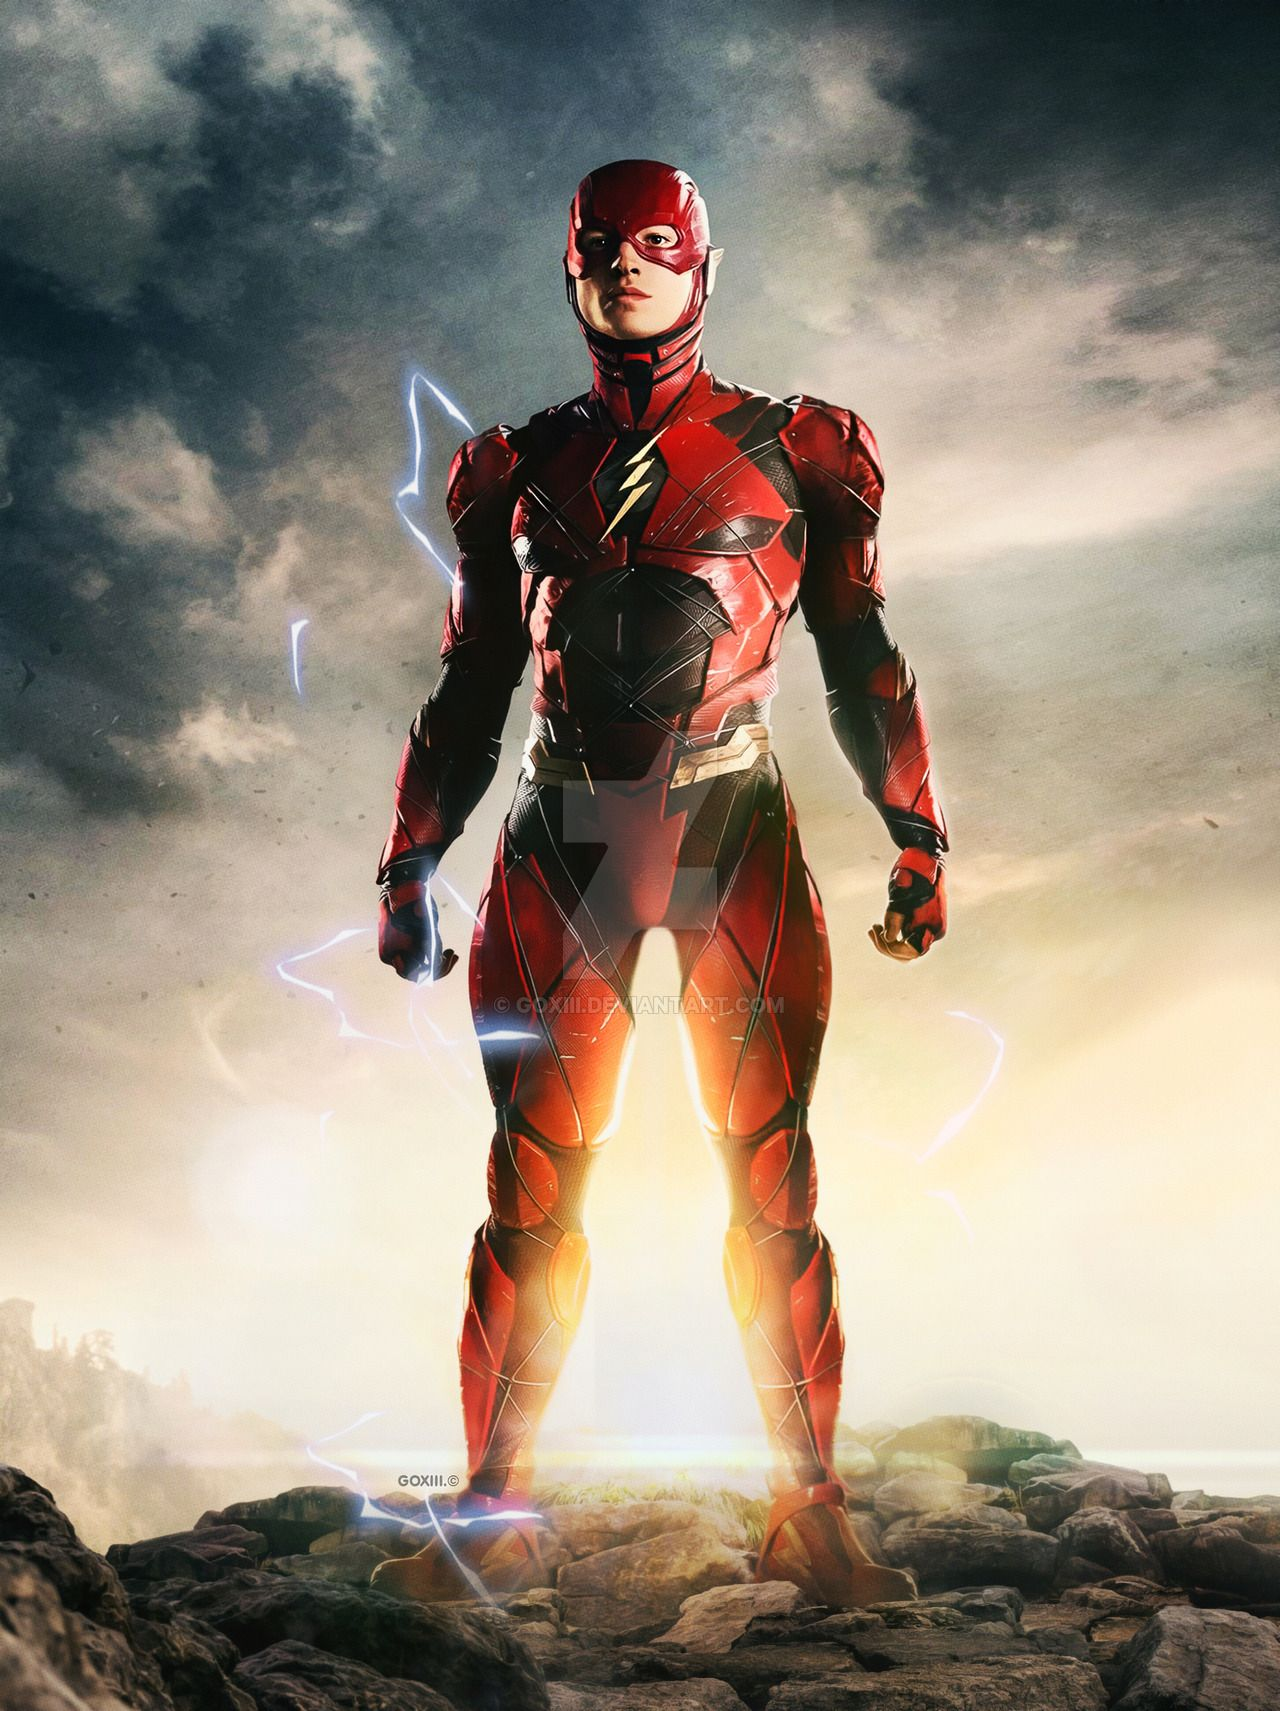 Justice League  The Flash by GOXIII on DeviantArt  d98310915b2a